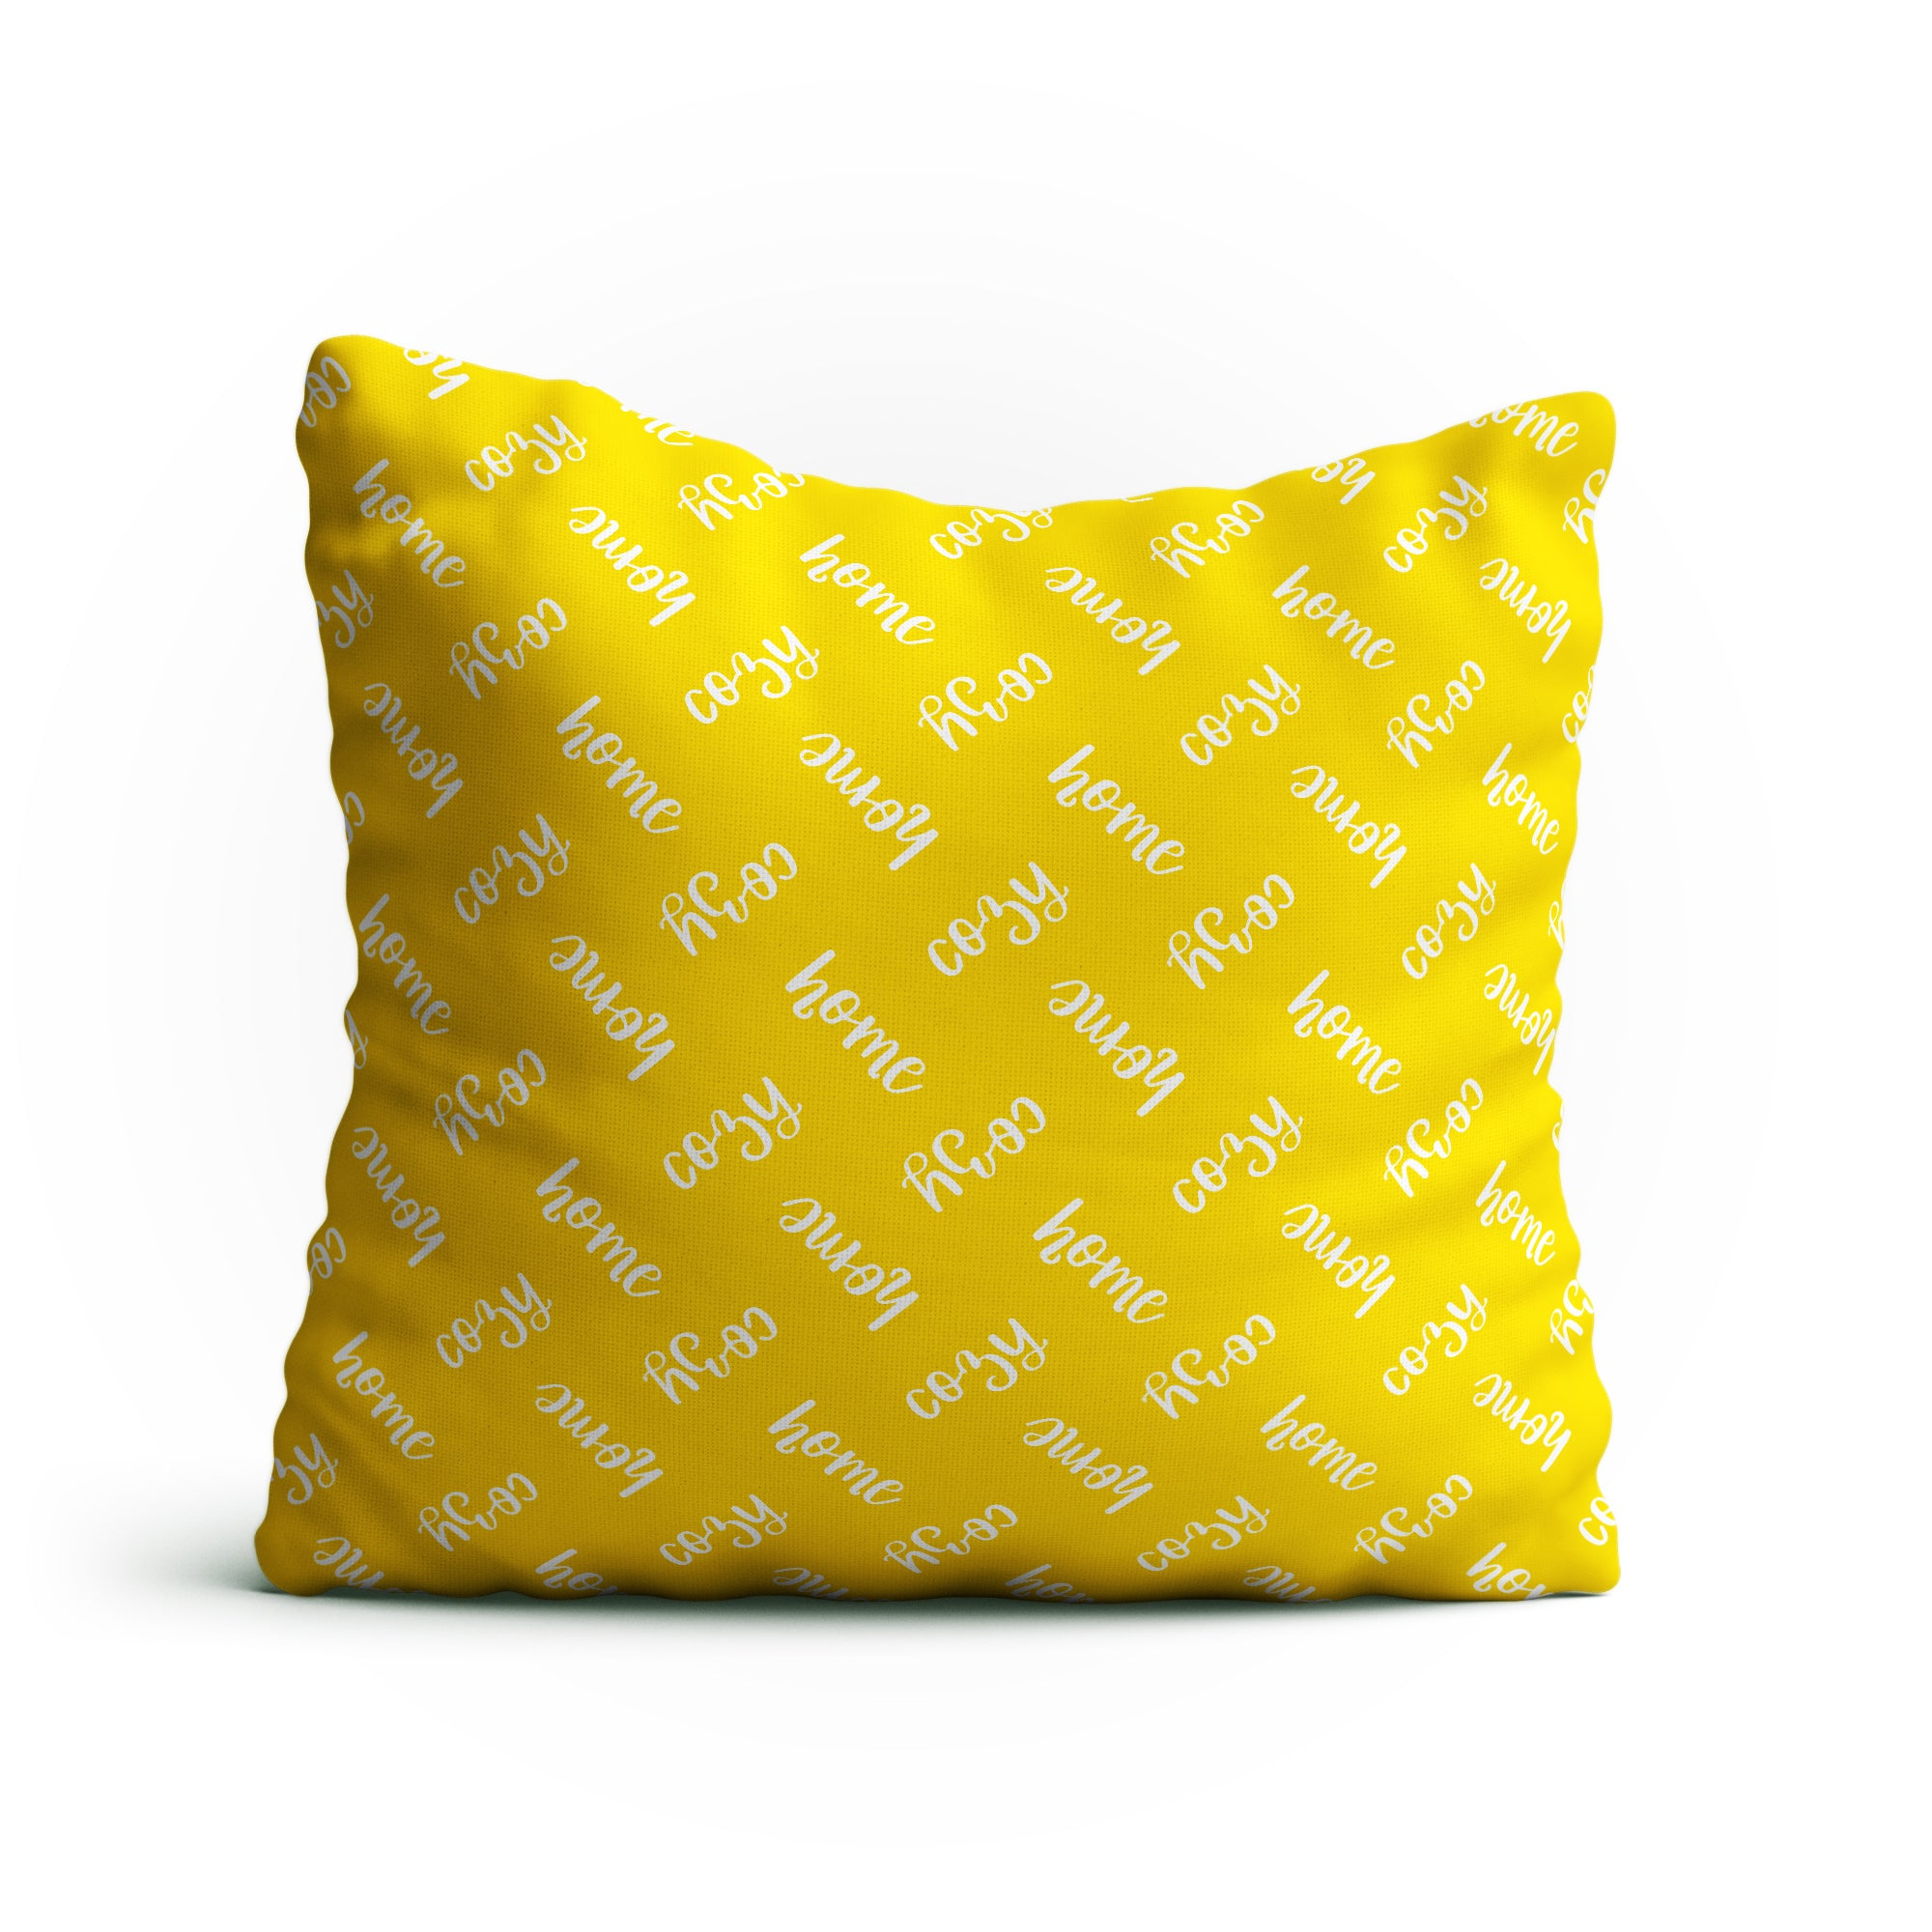 Throw Pillow - 'Cozy Home' Text Pattern Double-Sided 18x18 Square Pillow Cover with Insert for Couch, Sofa or Bed ( Yellow )